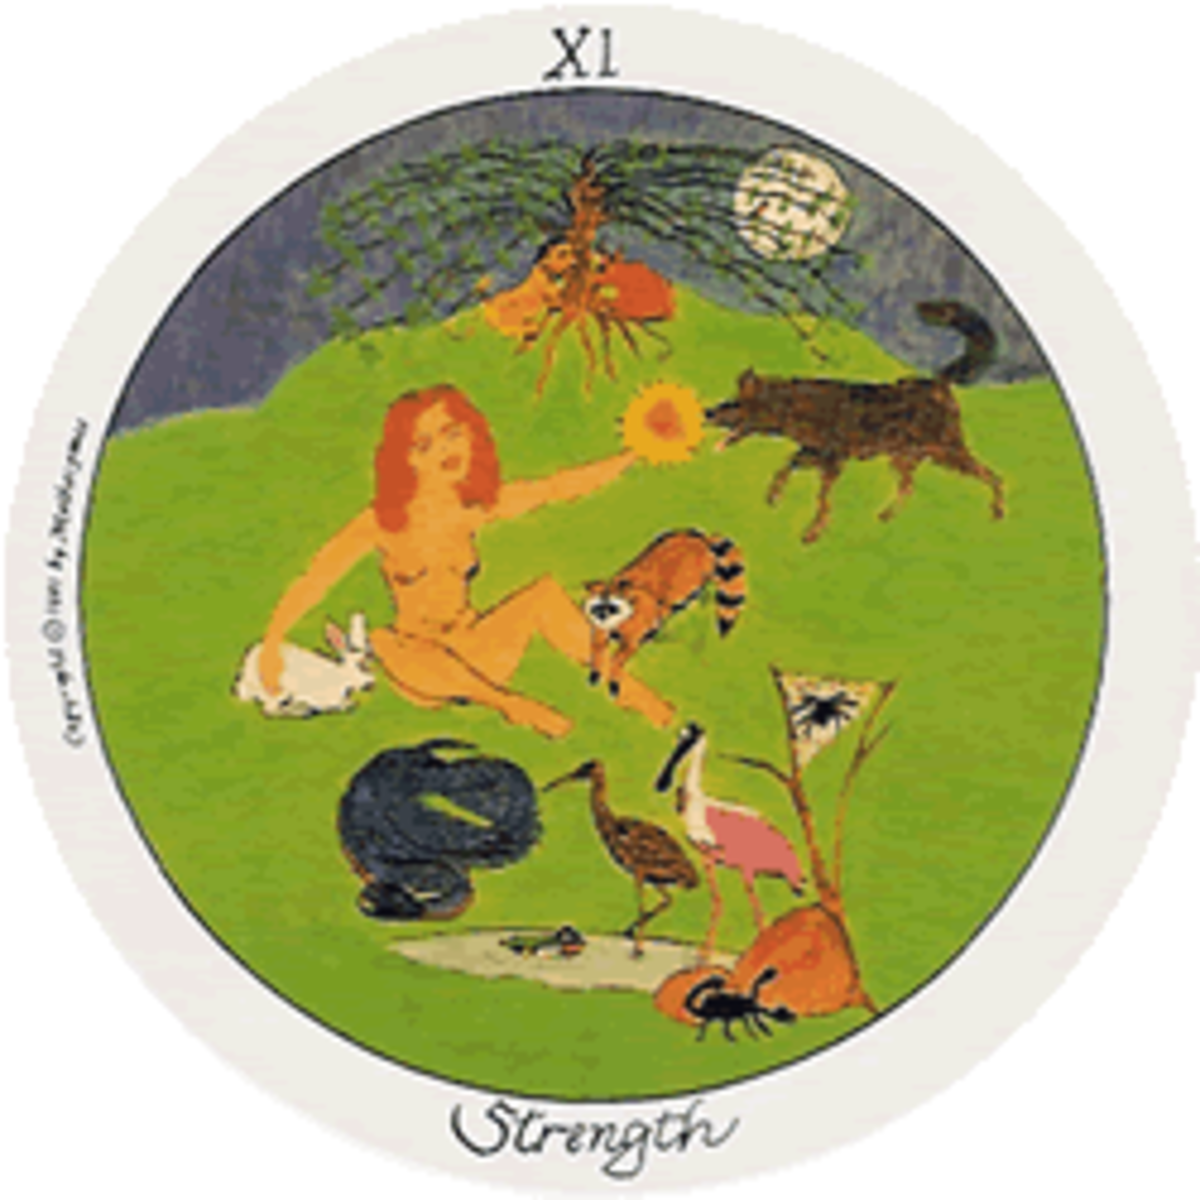 The Goddess Brigid of Ireland shows that gentleness and kindness are both parts of Strength.